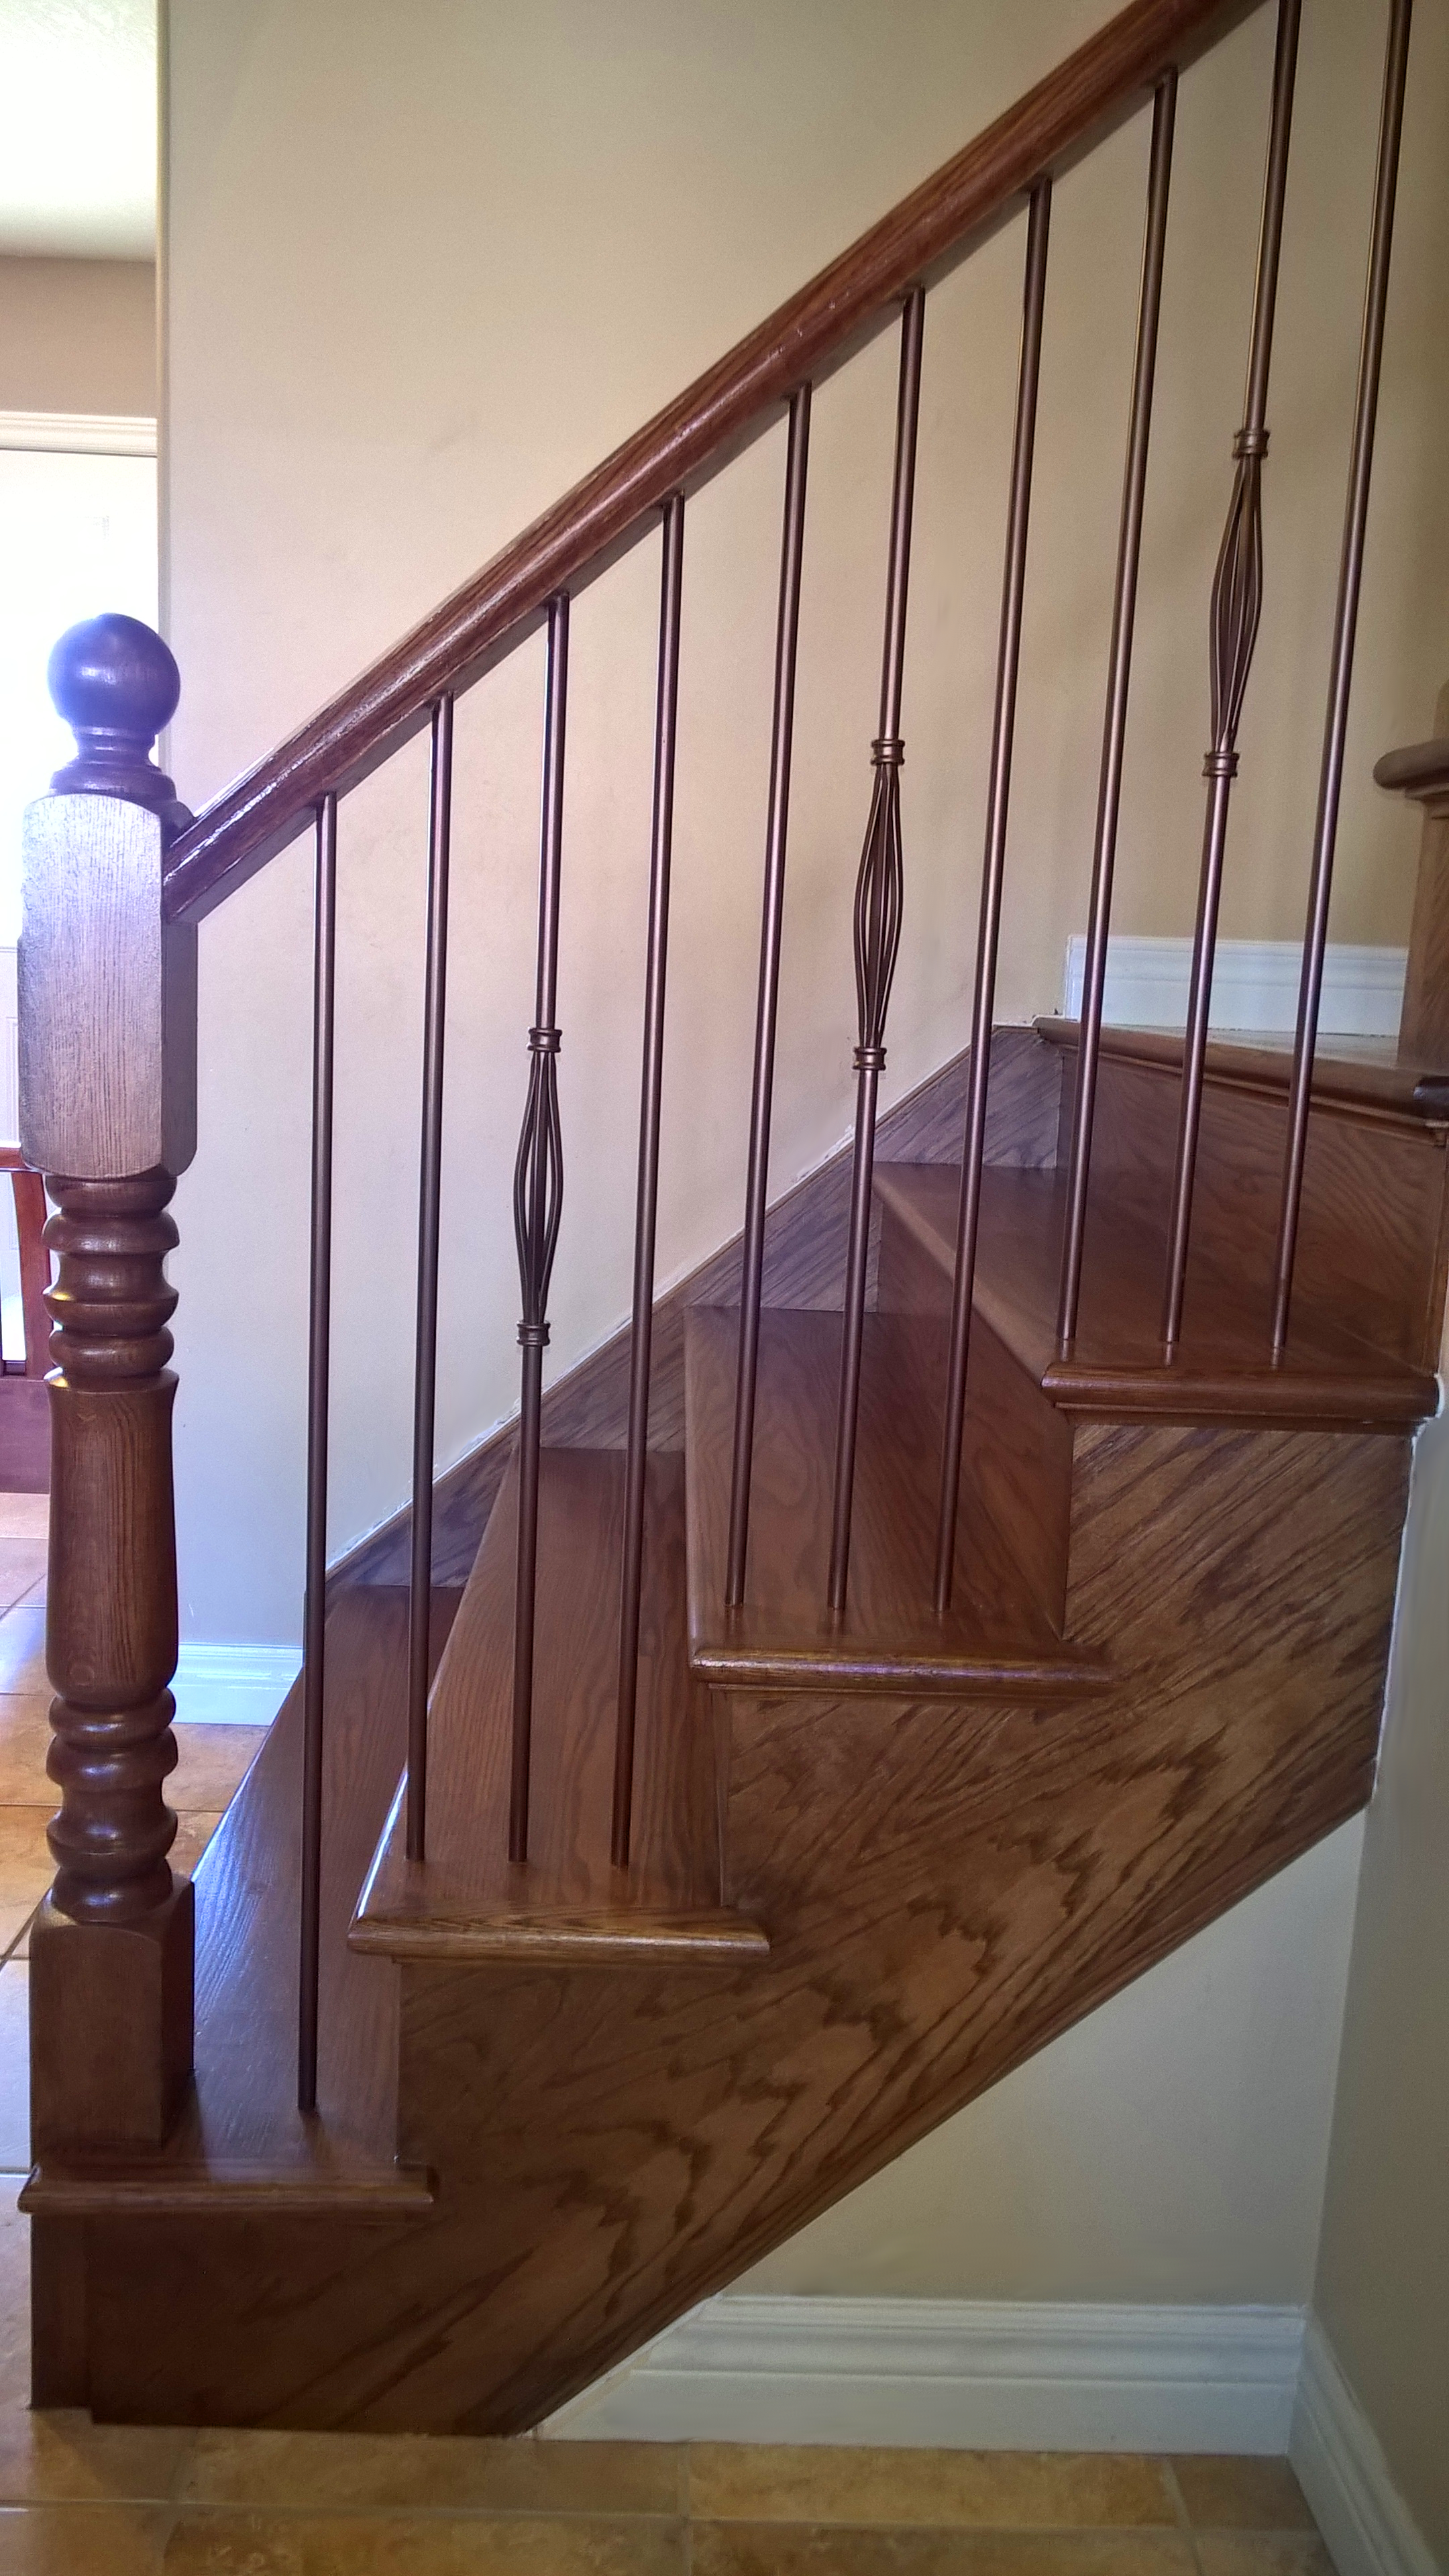 Stairs Capping/refacing, Special Walnut Stain On Red Oak, Metal Balusters, 3